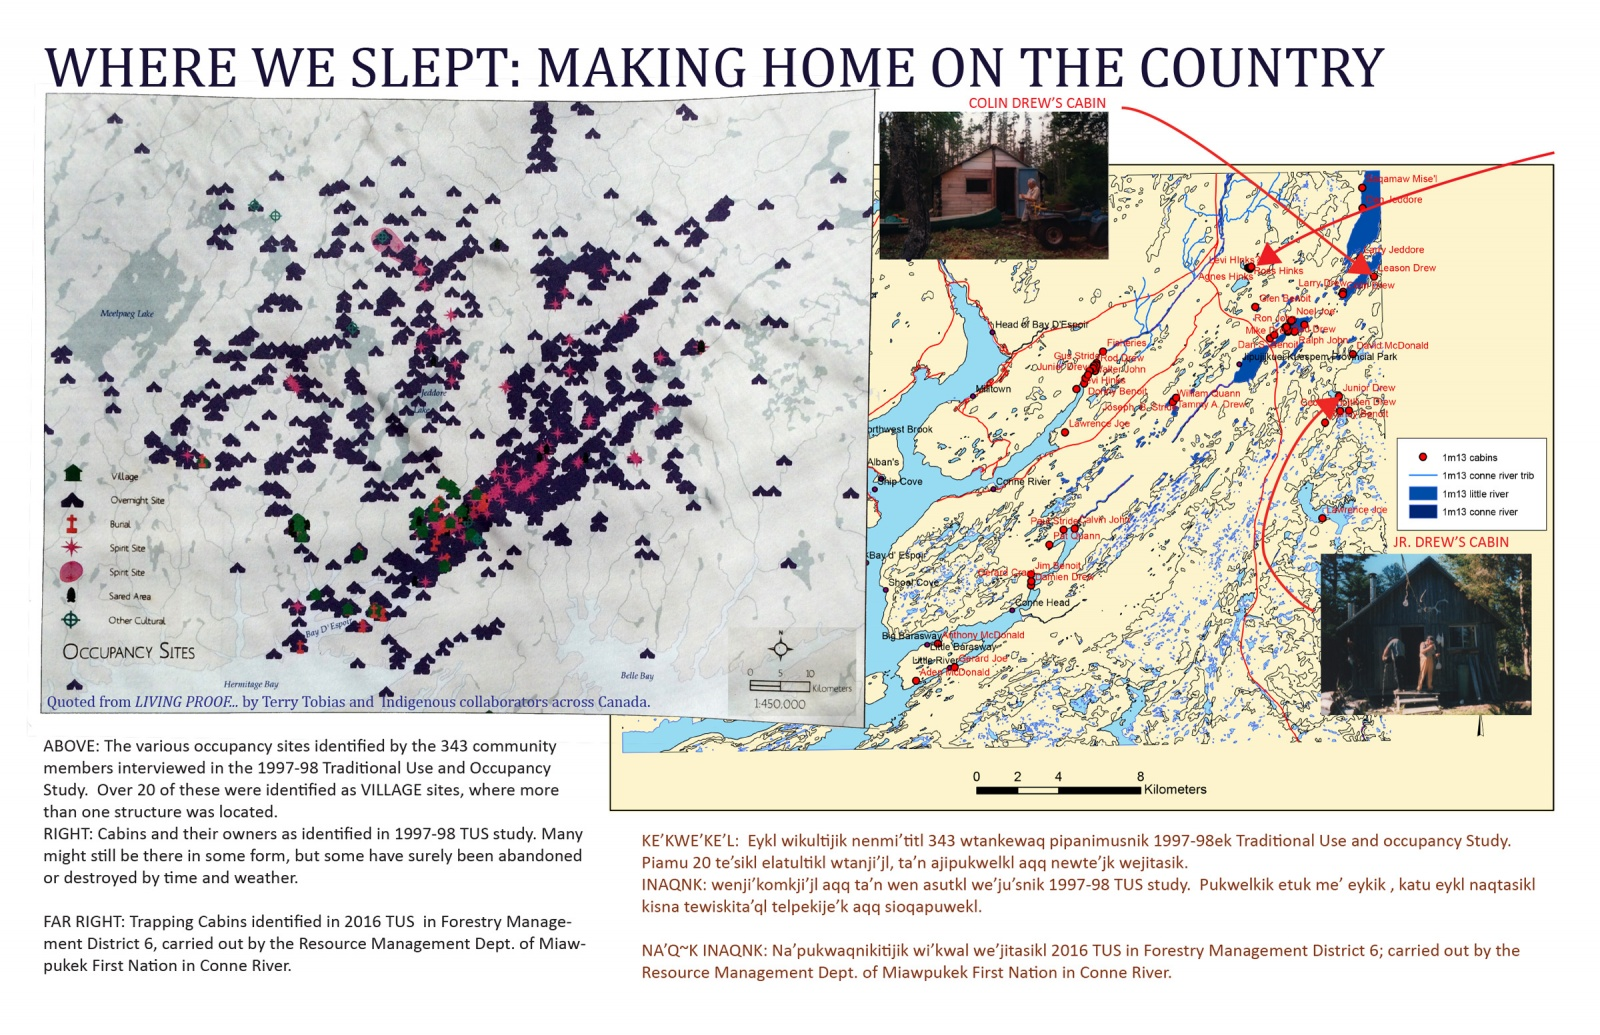 Where We Slept: Making Home on the Country